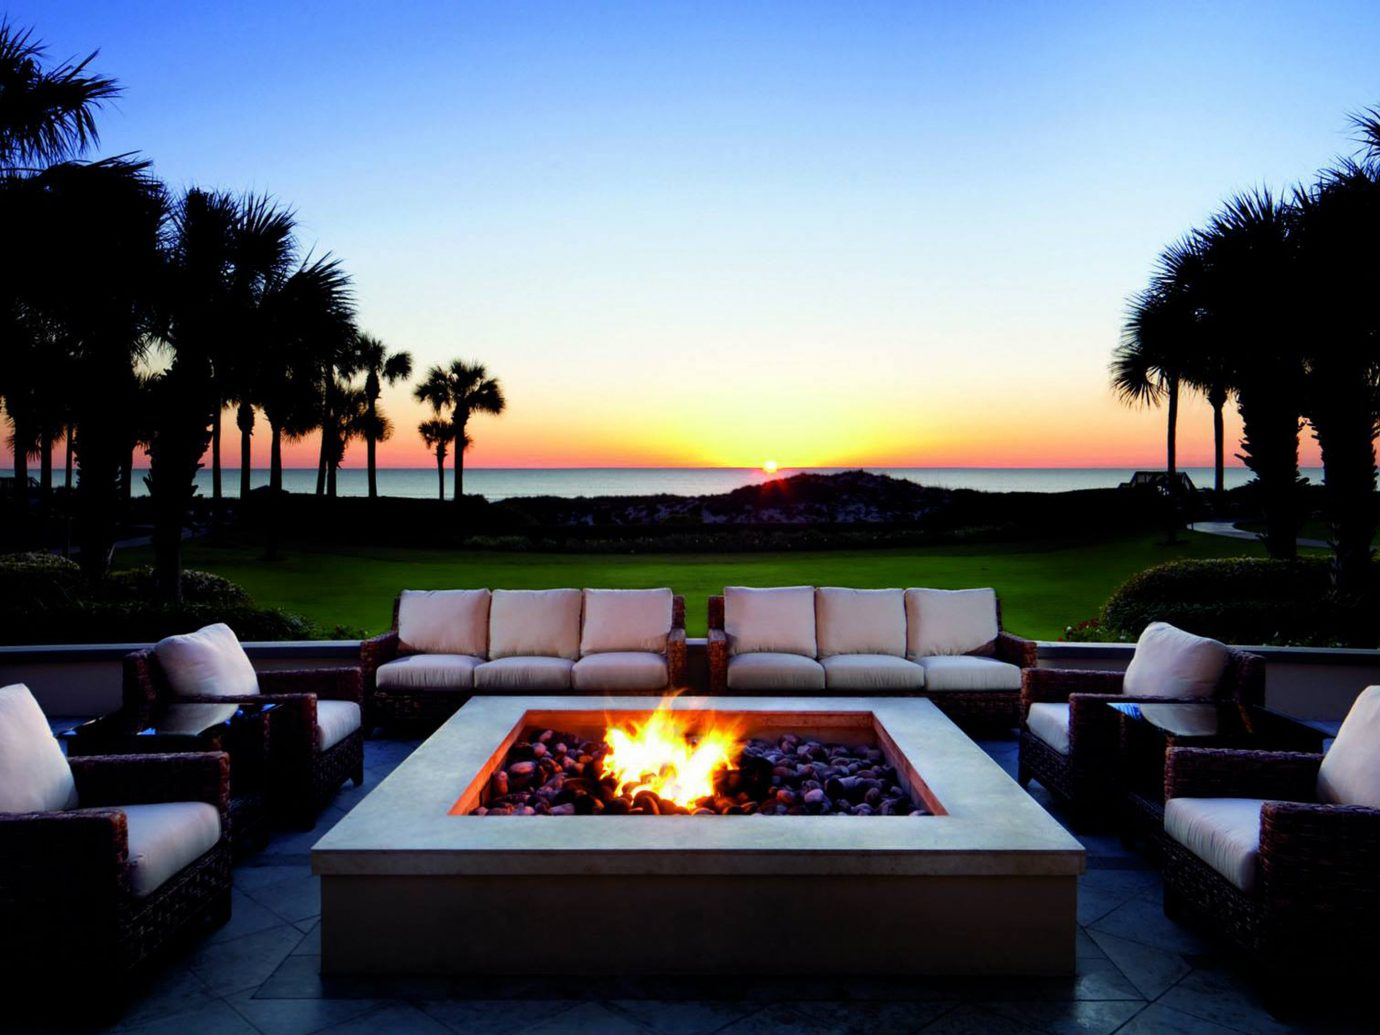 Firepit Hotels Living Lounge Sunset sky outdoor estate lighting evening swimming pool home landscape lighting dusk furniture